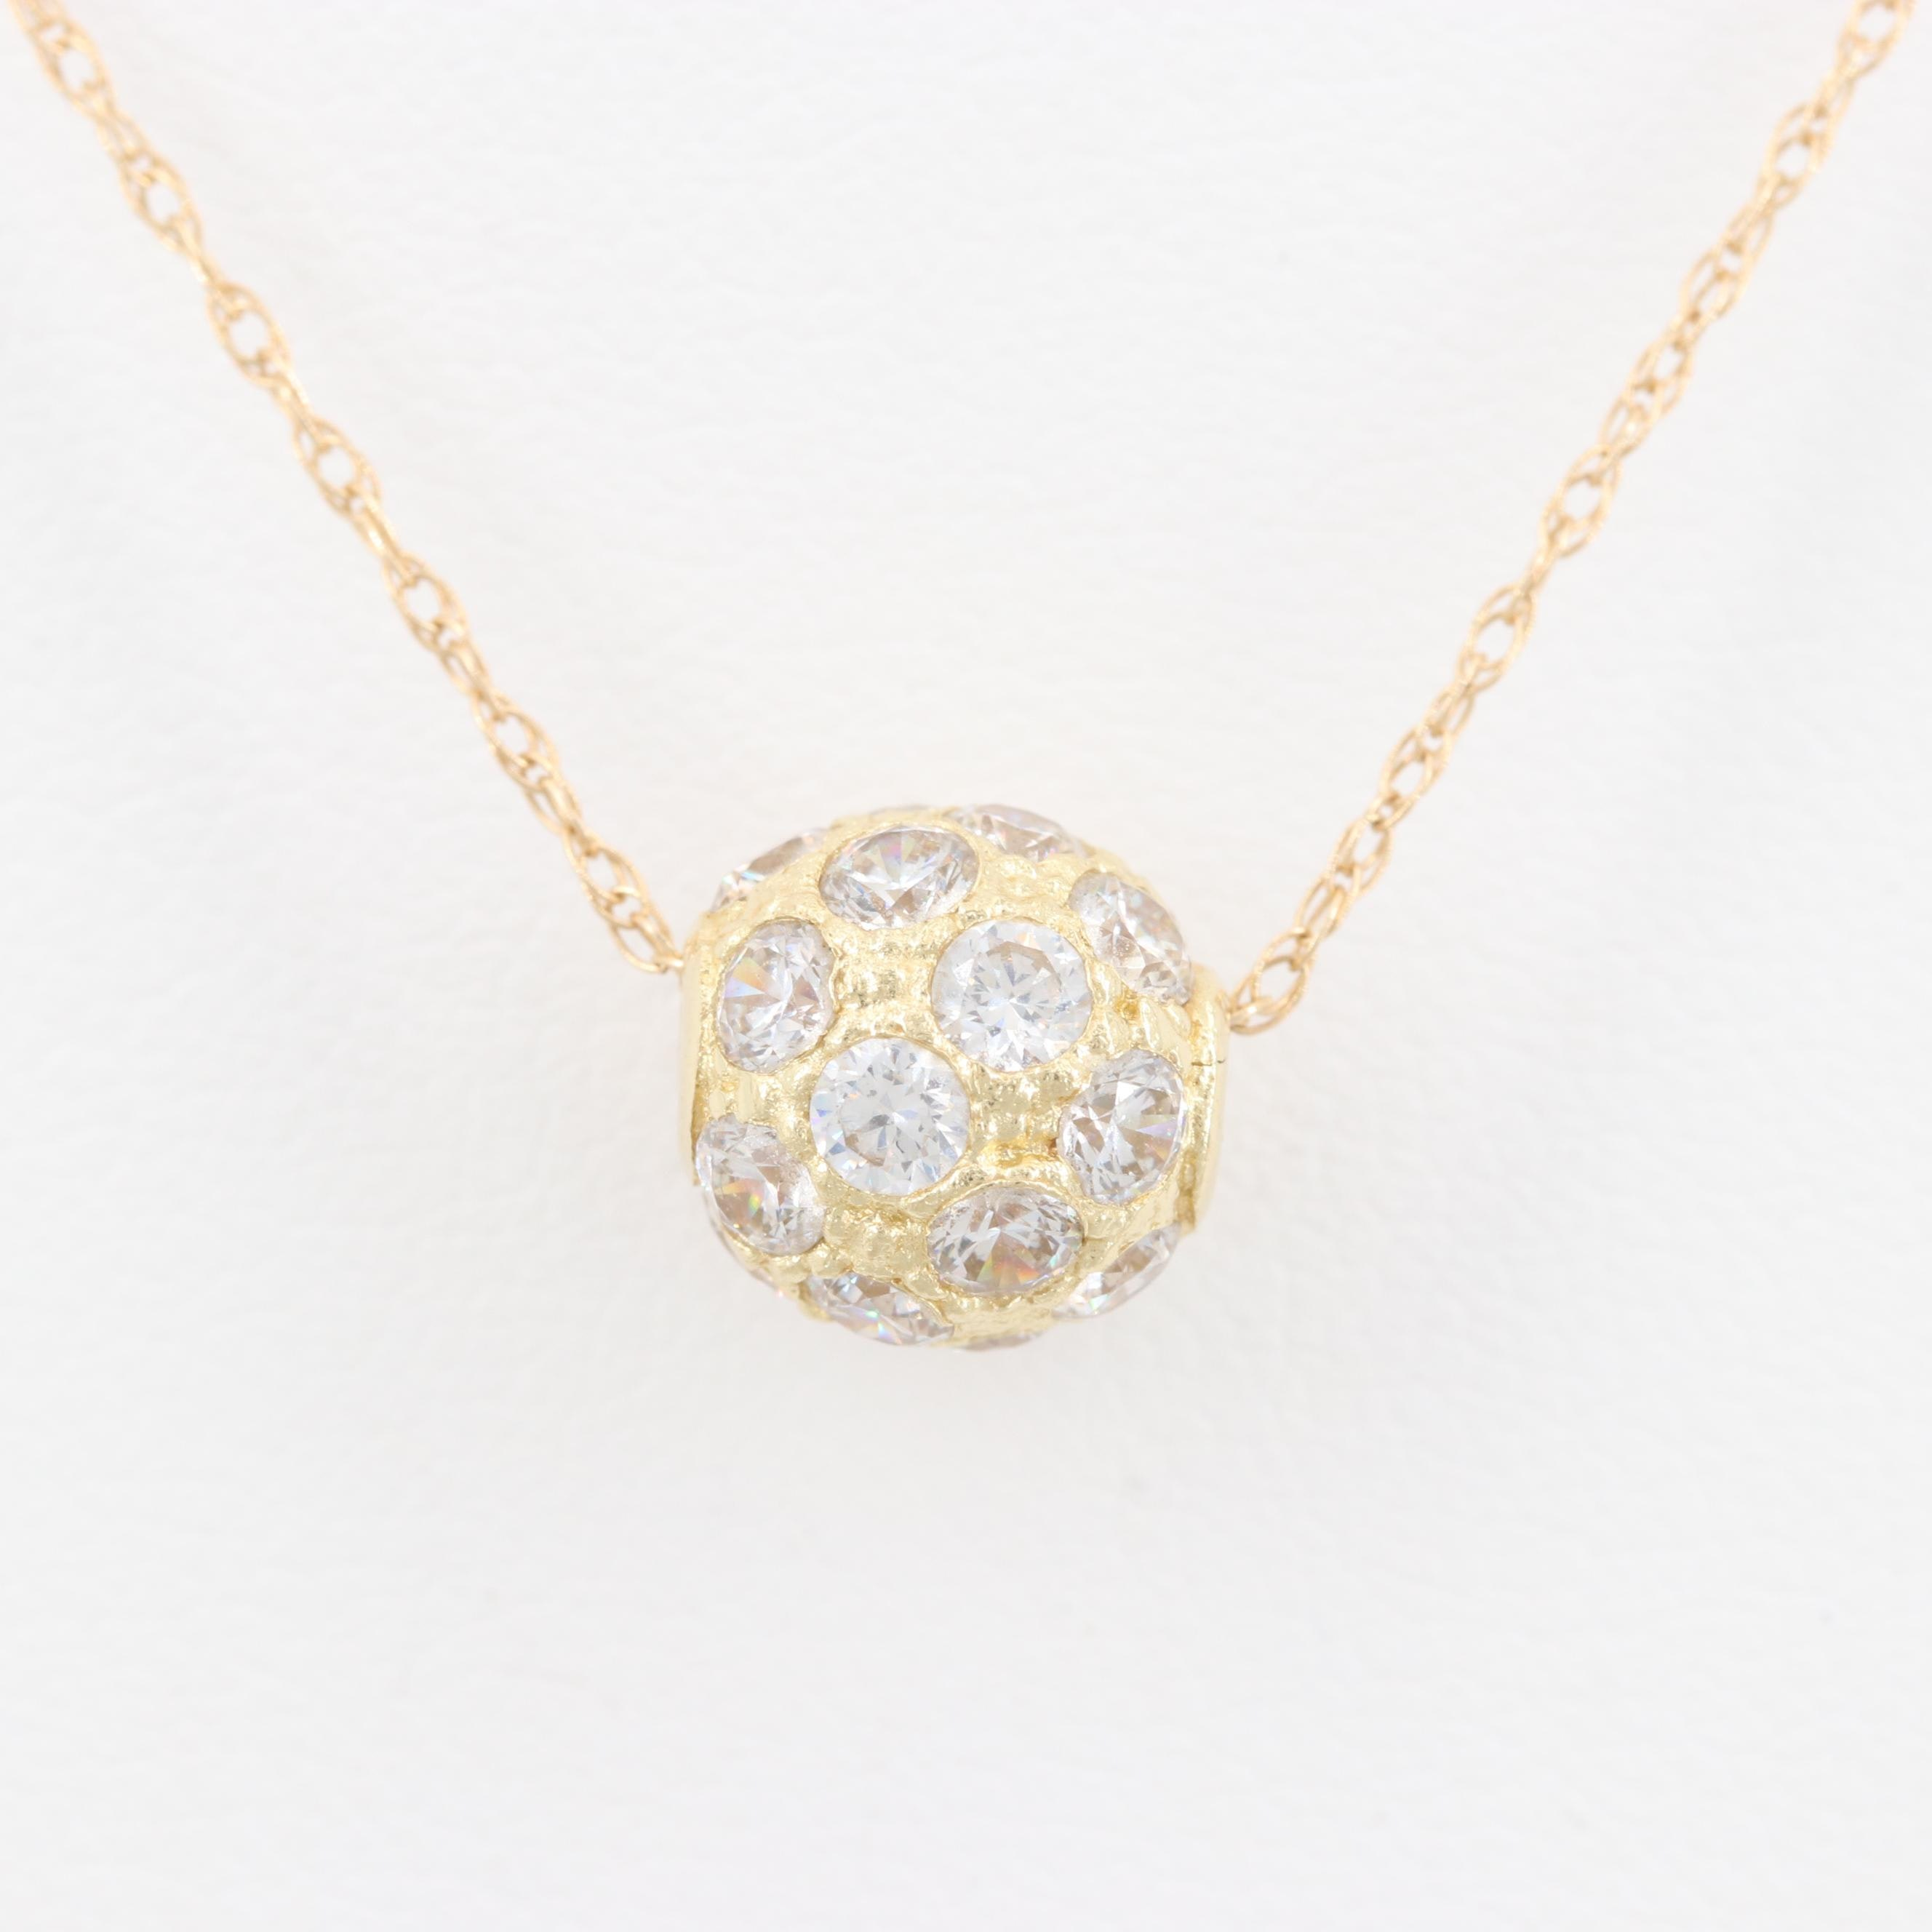 14K Yellow Gold Gem Pendant Necklace